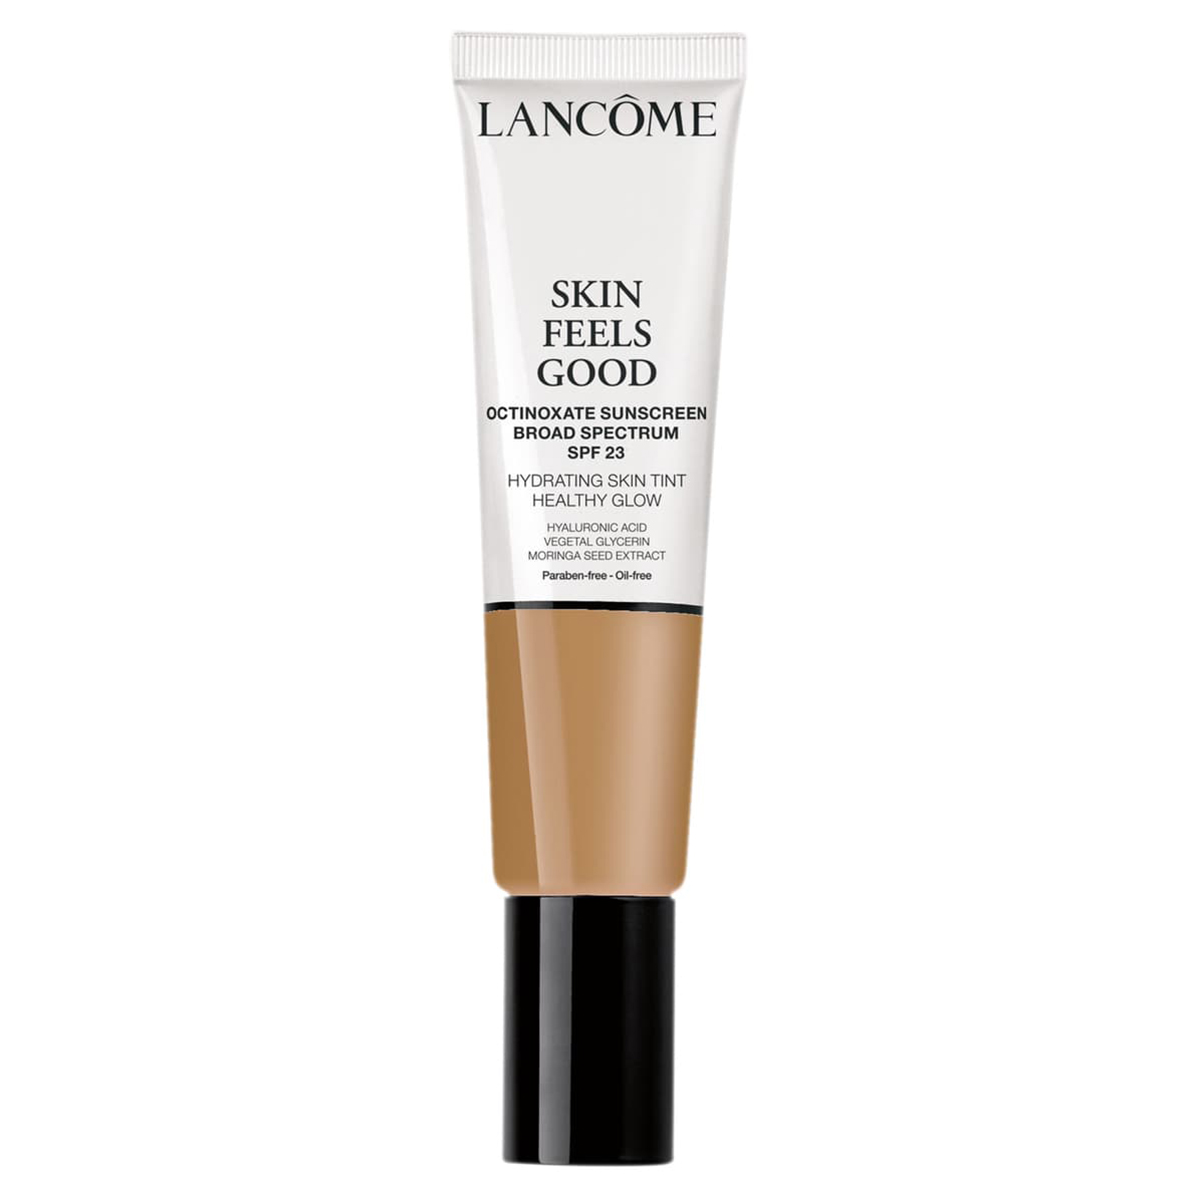 Lancome Skin Feels Good Hydrating Skin Tint Healthy Glow SPF 23